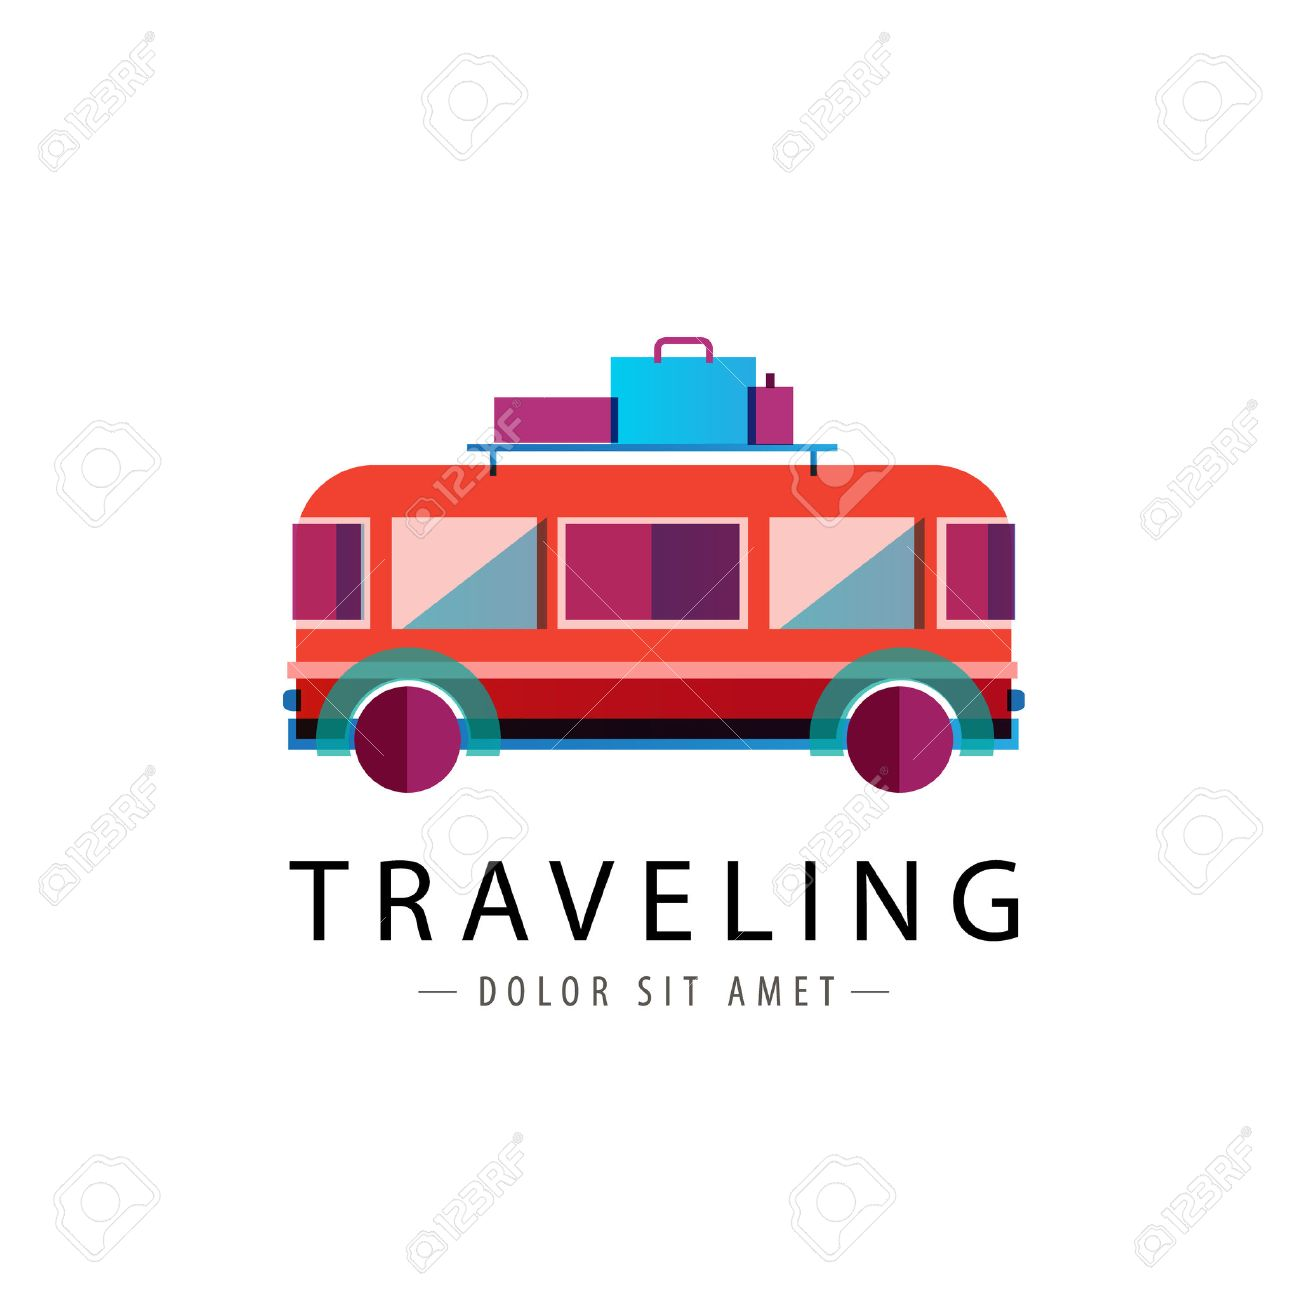 vector retro bus logo traveling icon isolated royalty free cliparts